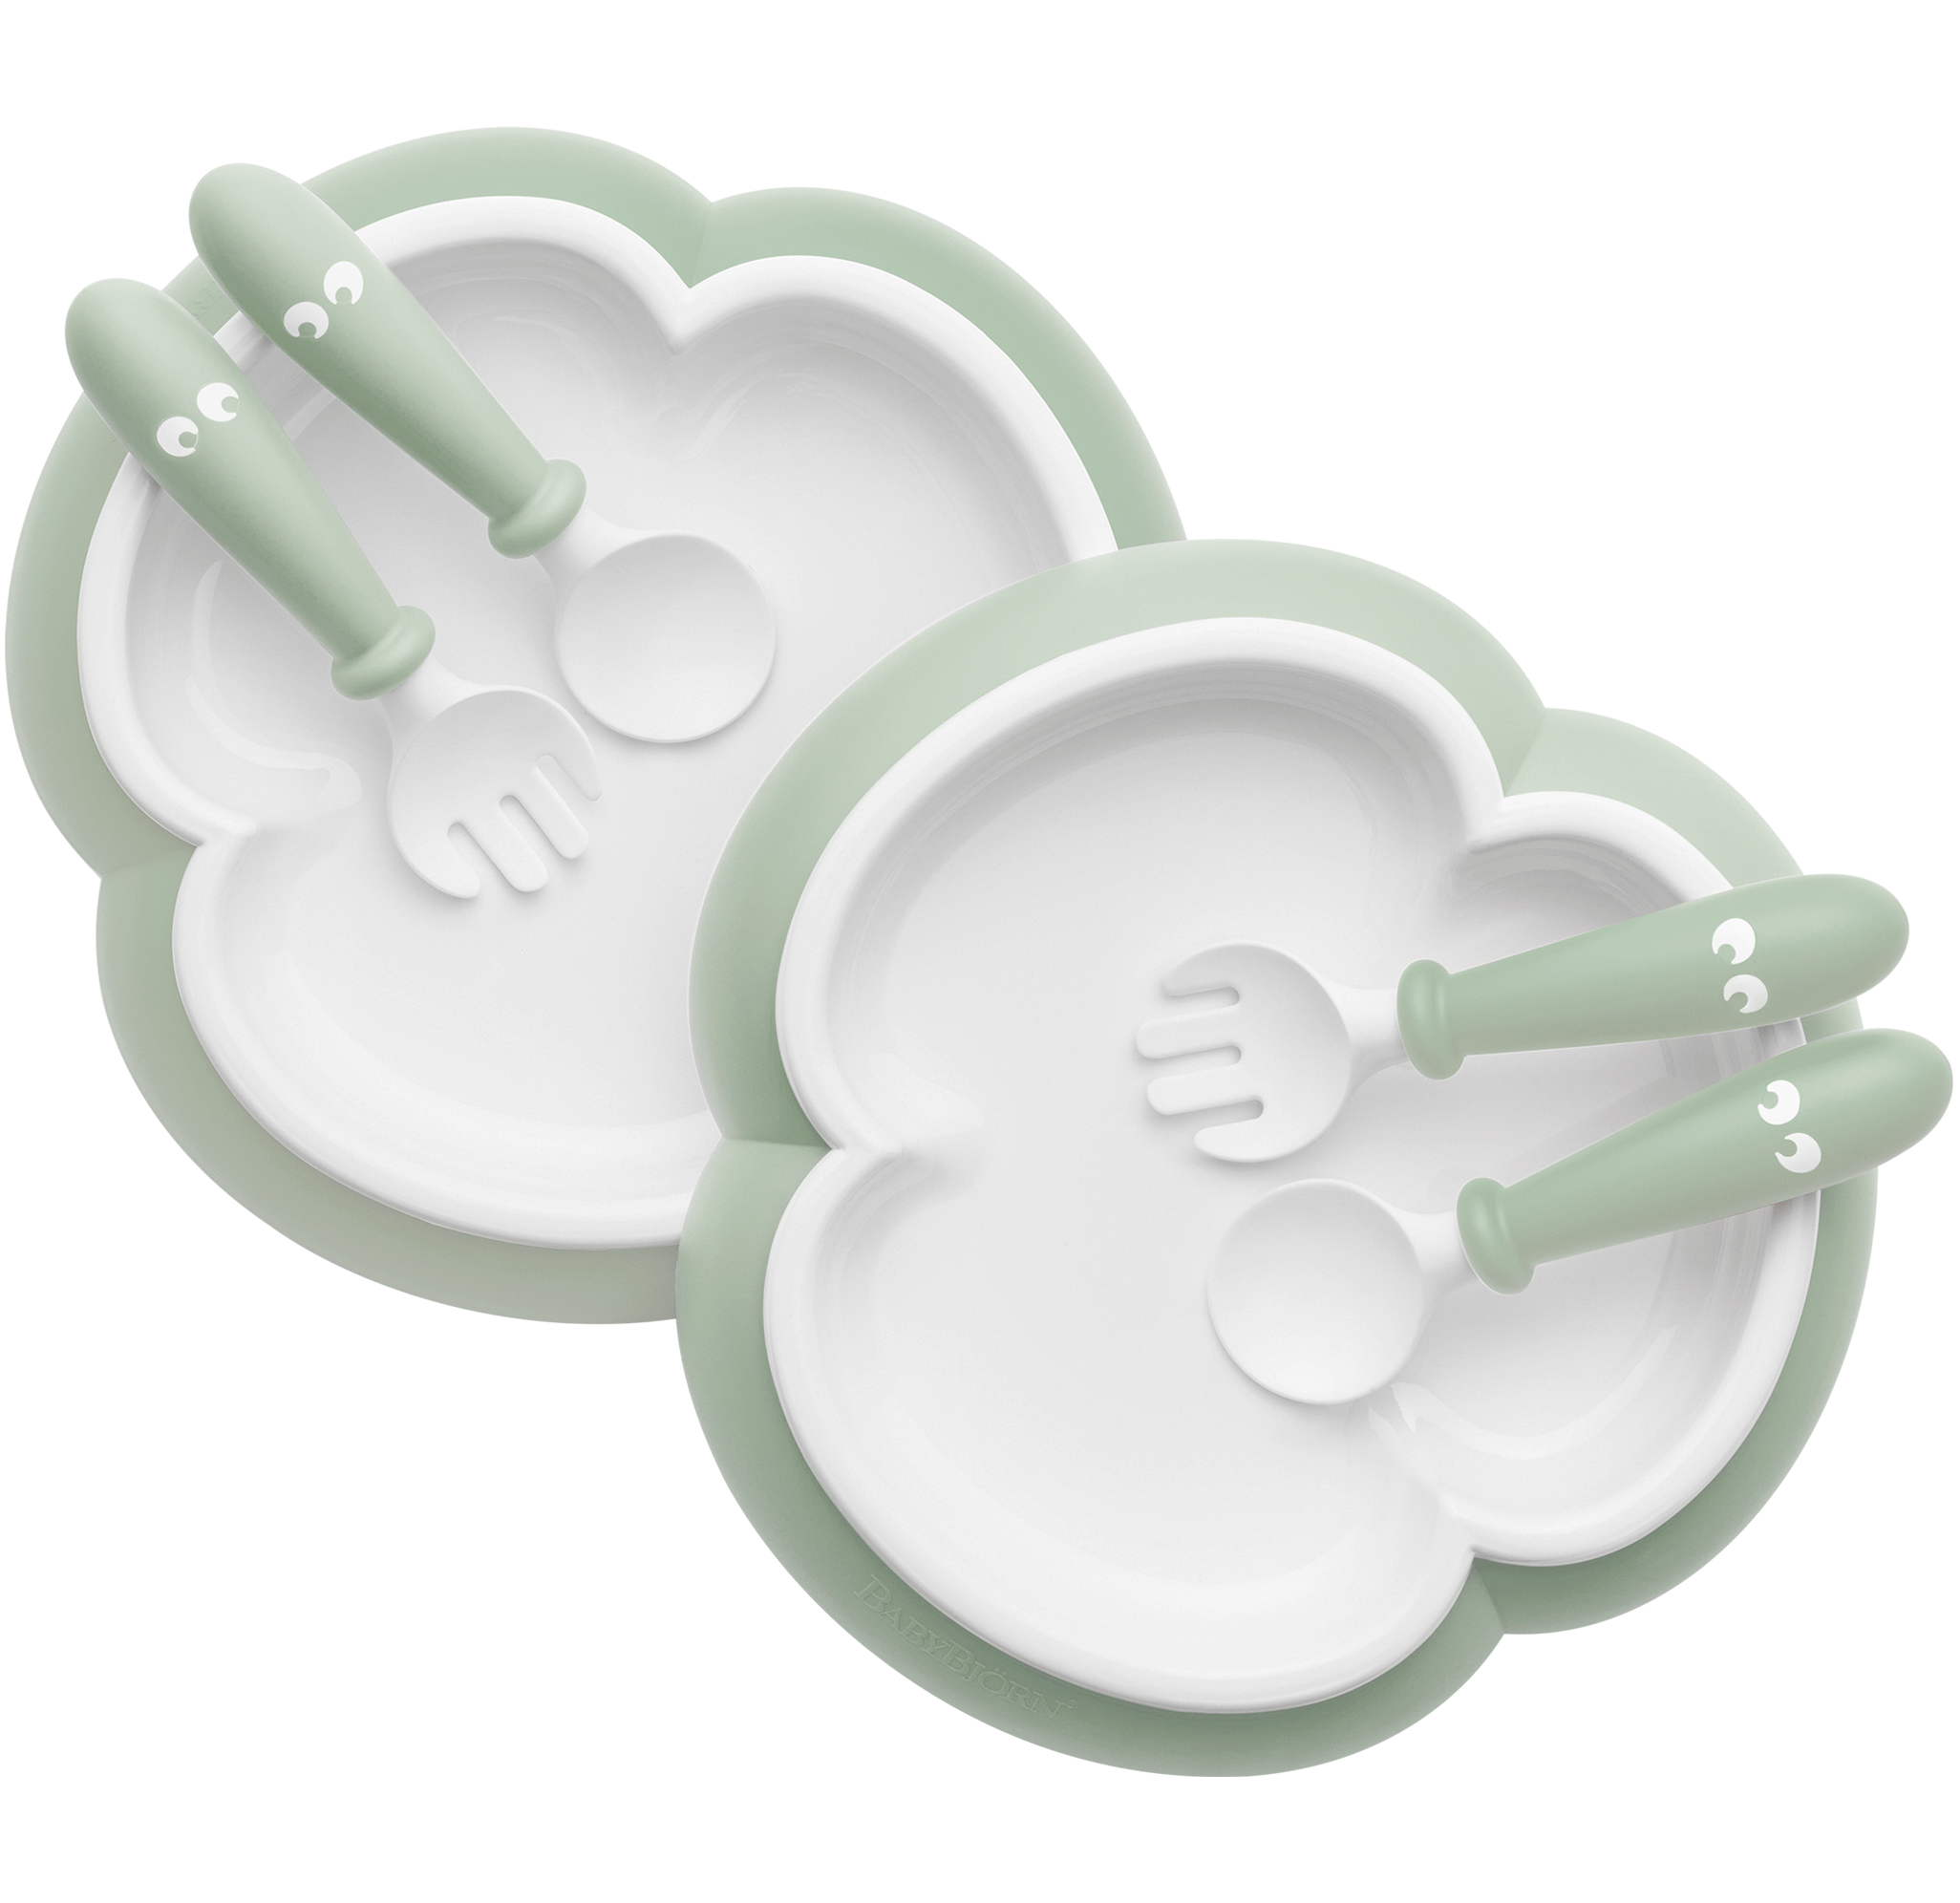 Baby Plate, Spoon and Fork, 2 sets, Powder green, with smart design which makes self-feeding easy - BABYBJÖRN